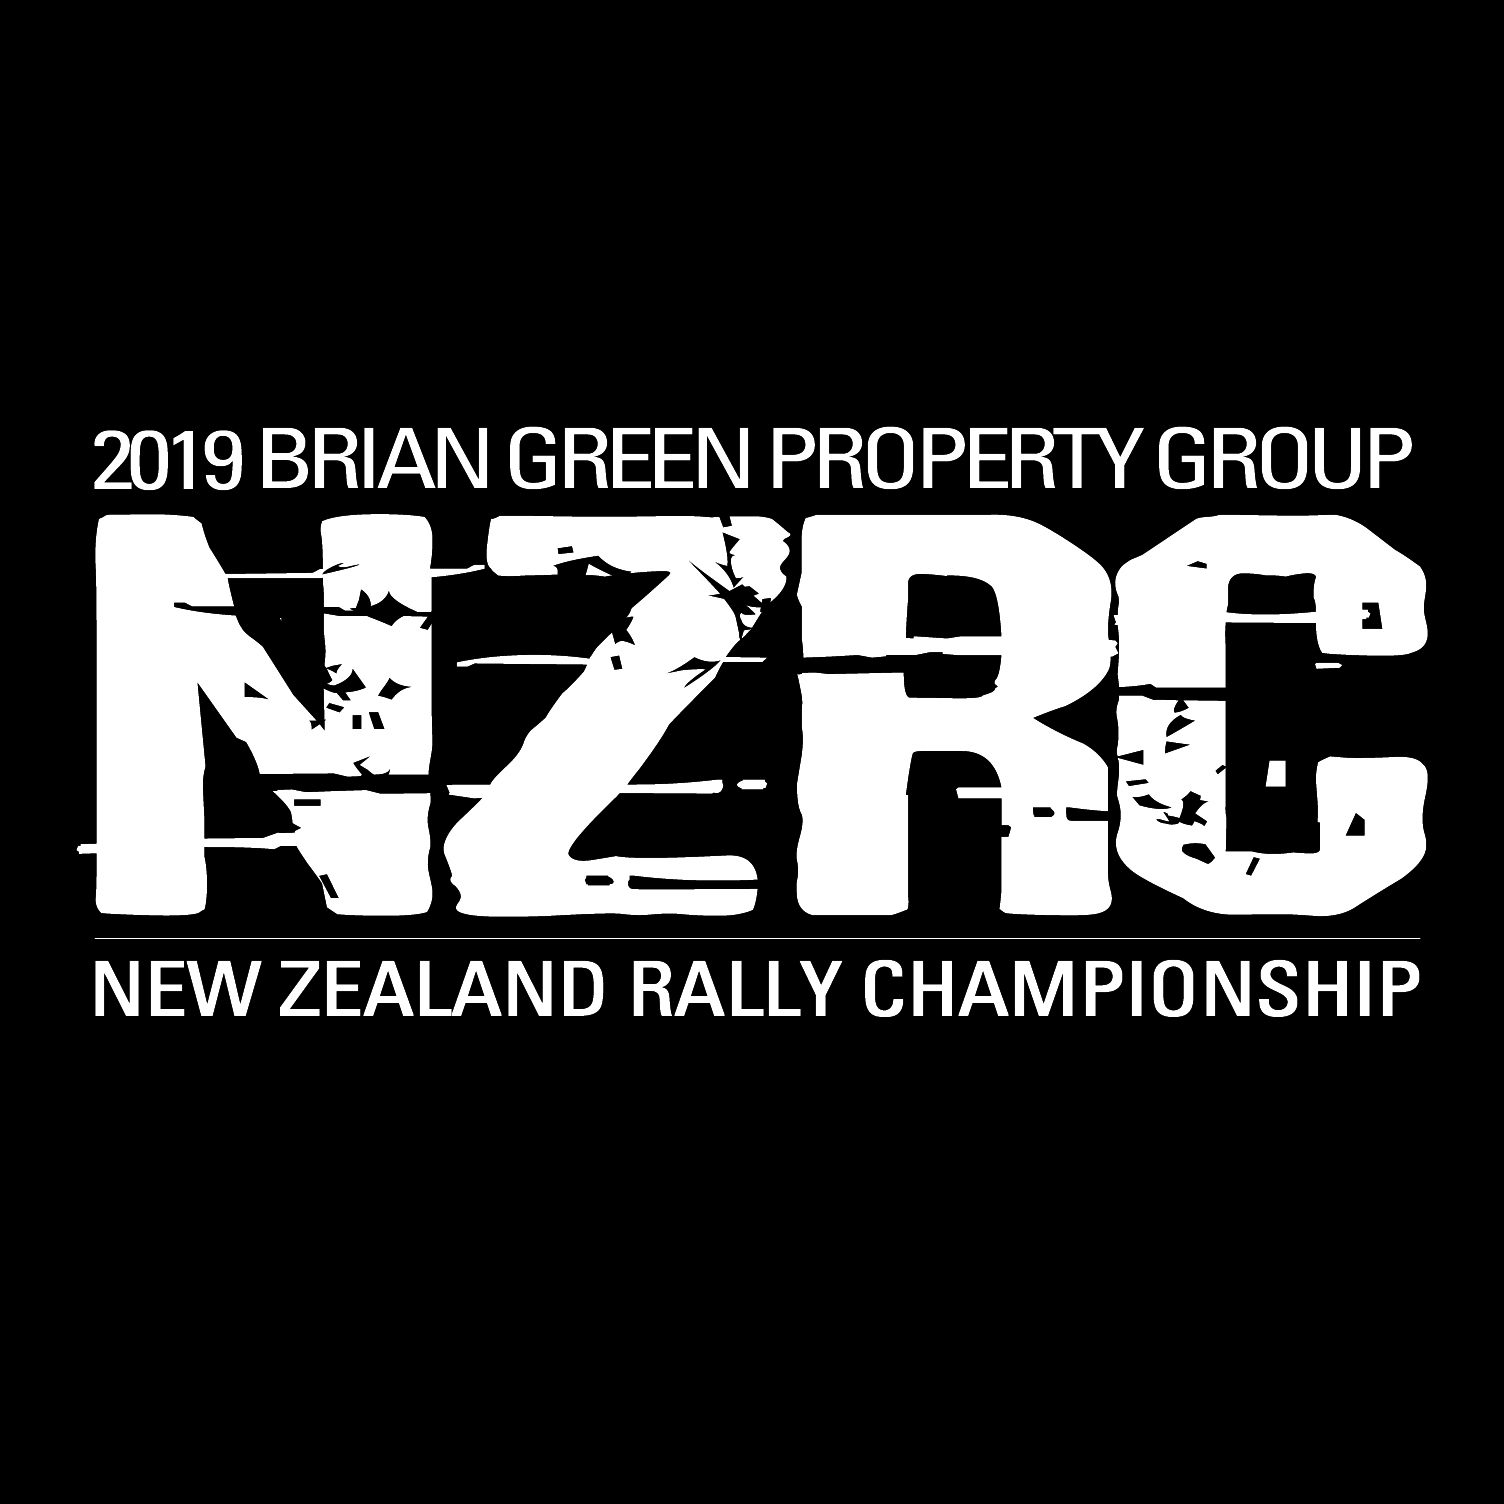 Brian Green Property Group | :: Brian Green Property Group New Zealand Rally Championship ::